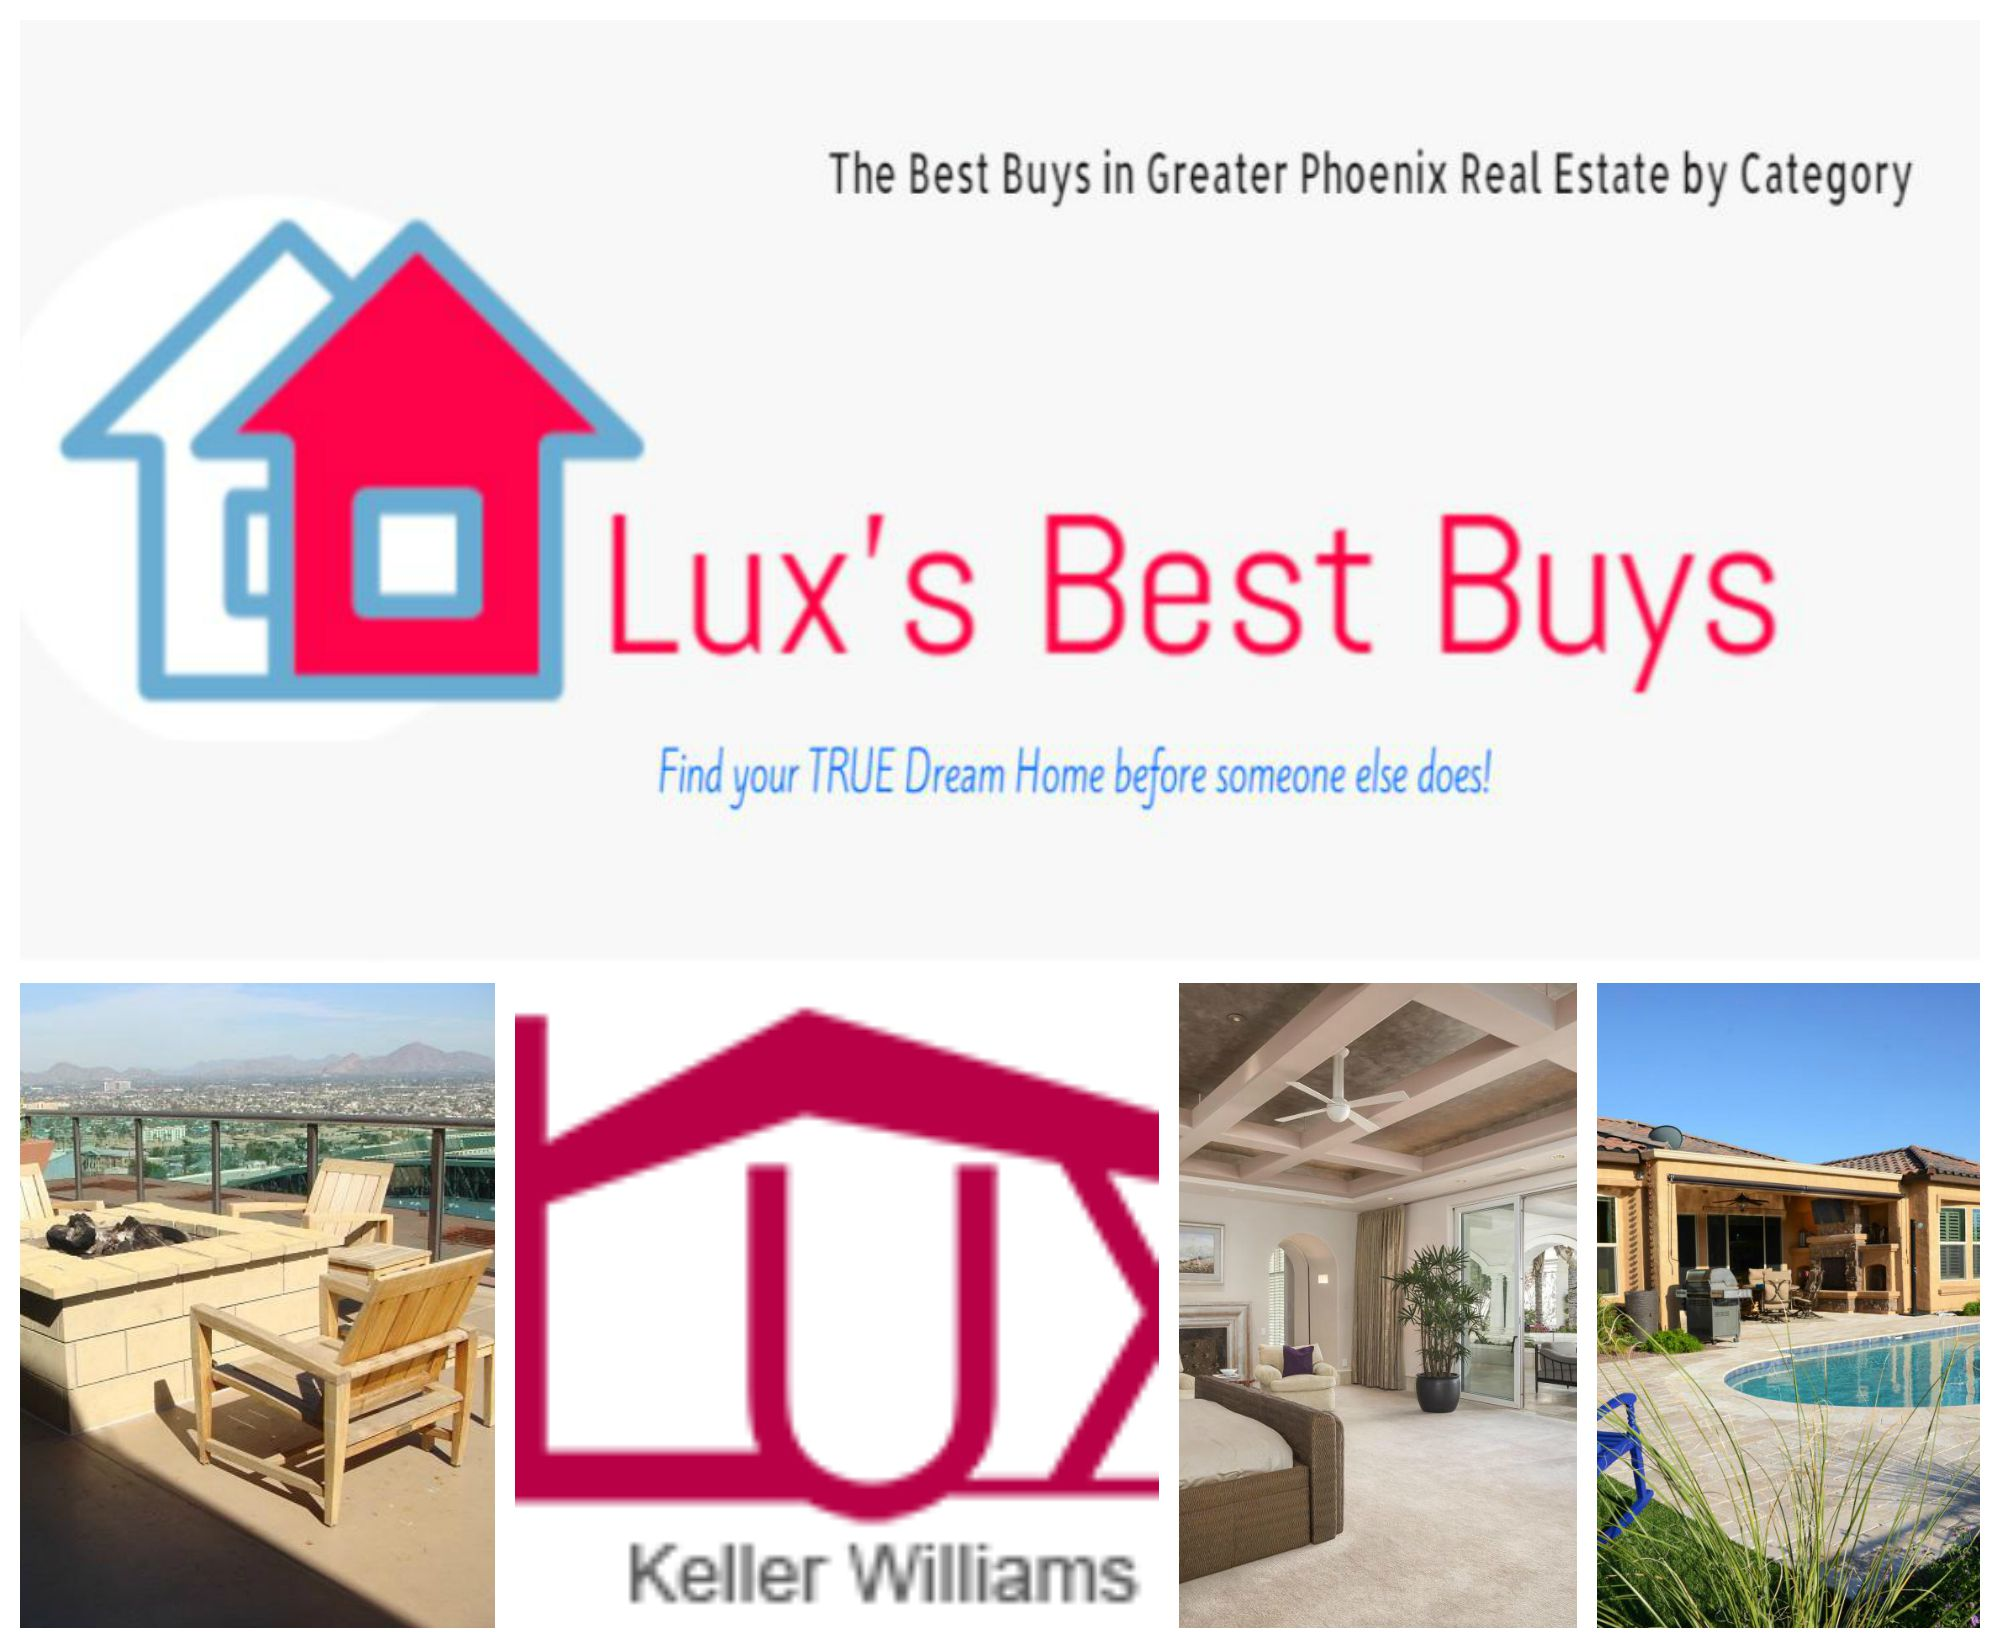 Lux's Best Buys by Category - Greater Phoenix Real Estate Search New MLS Listings